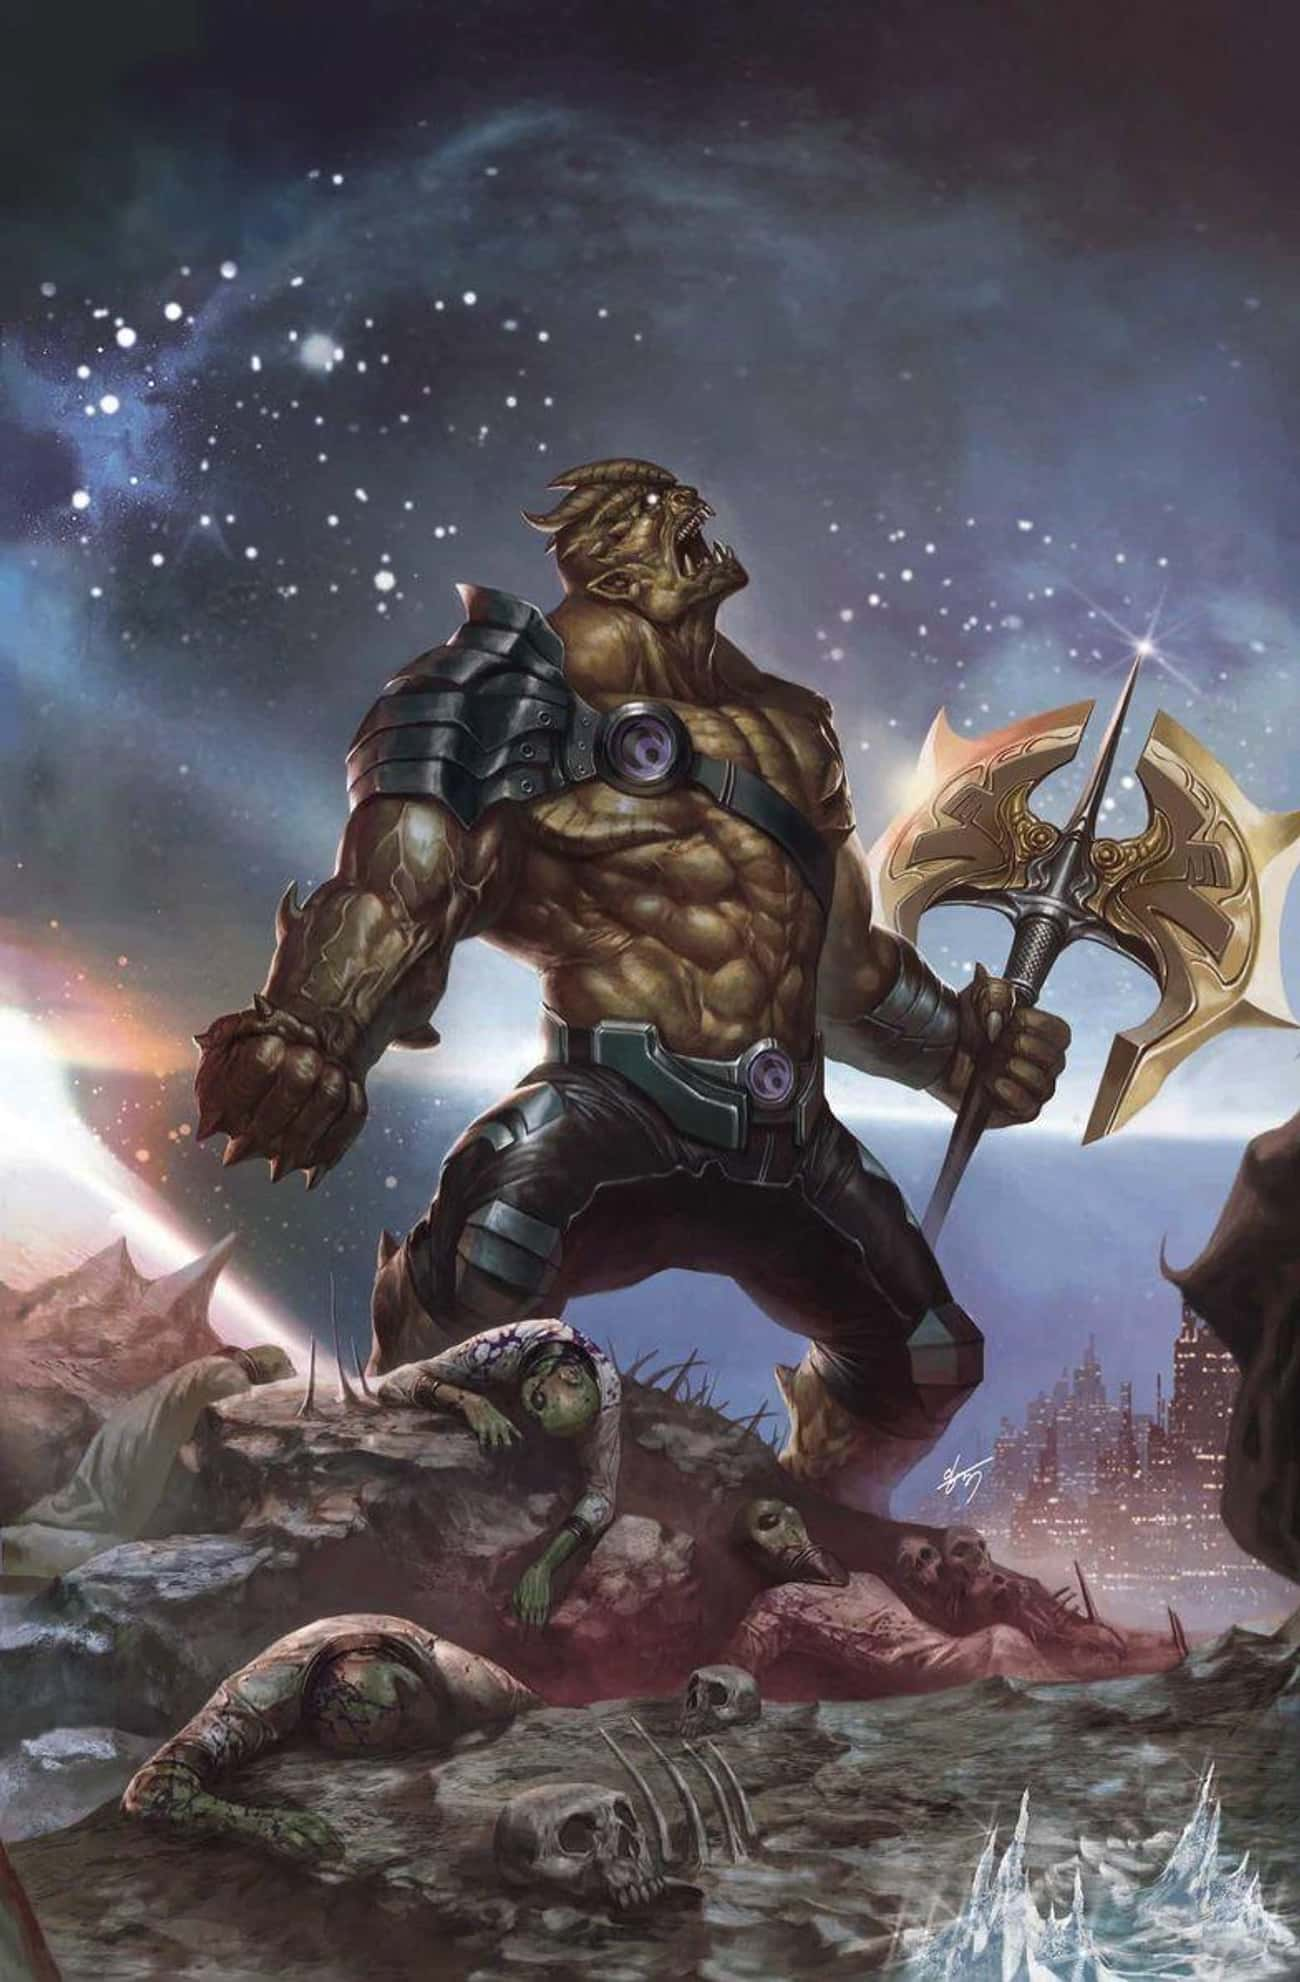 Black Dwarf/Obsidian Cull is listed (or ranked) 3 on the list The Secret History Of The Black Order, The Most Terrifying Villain Team In Marvel History